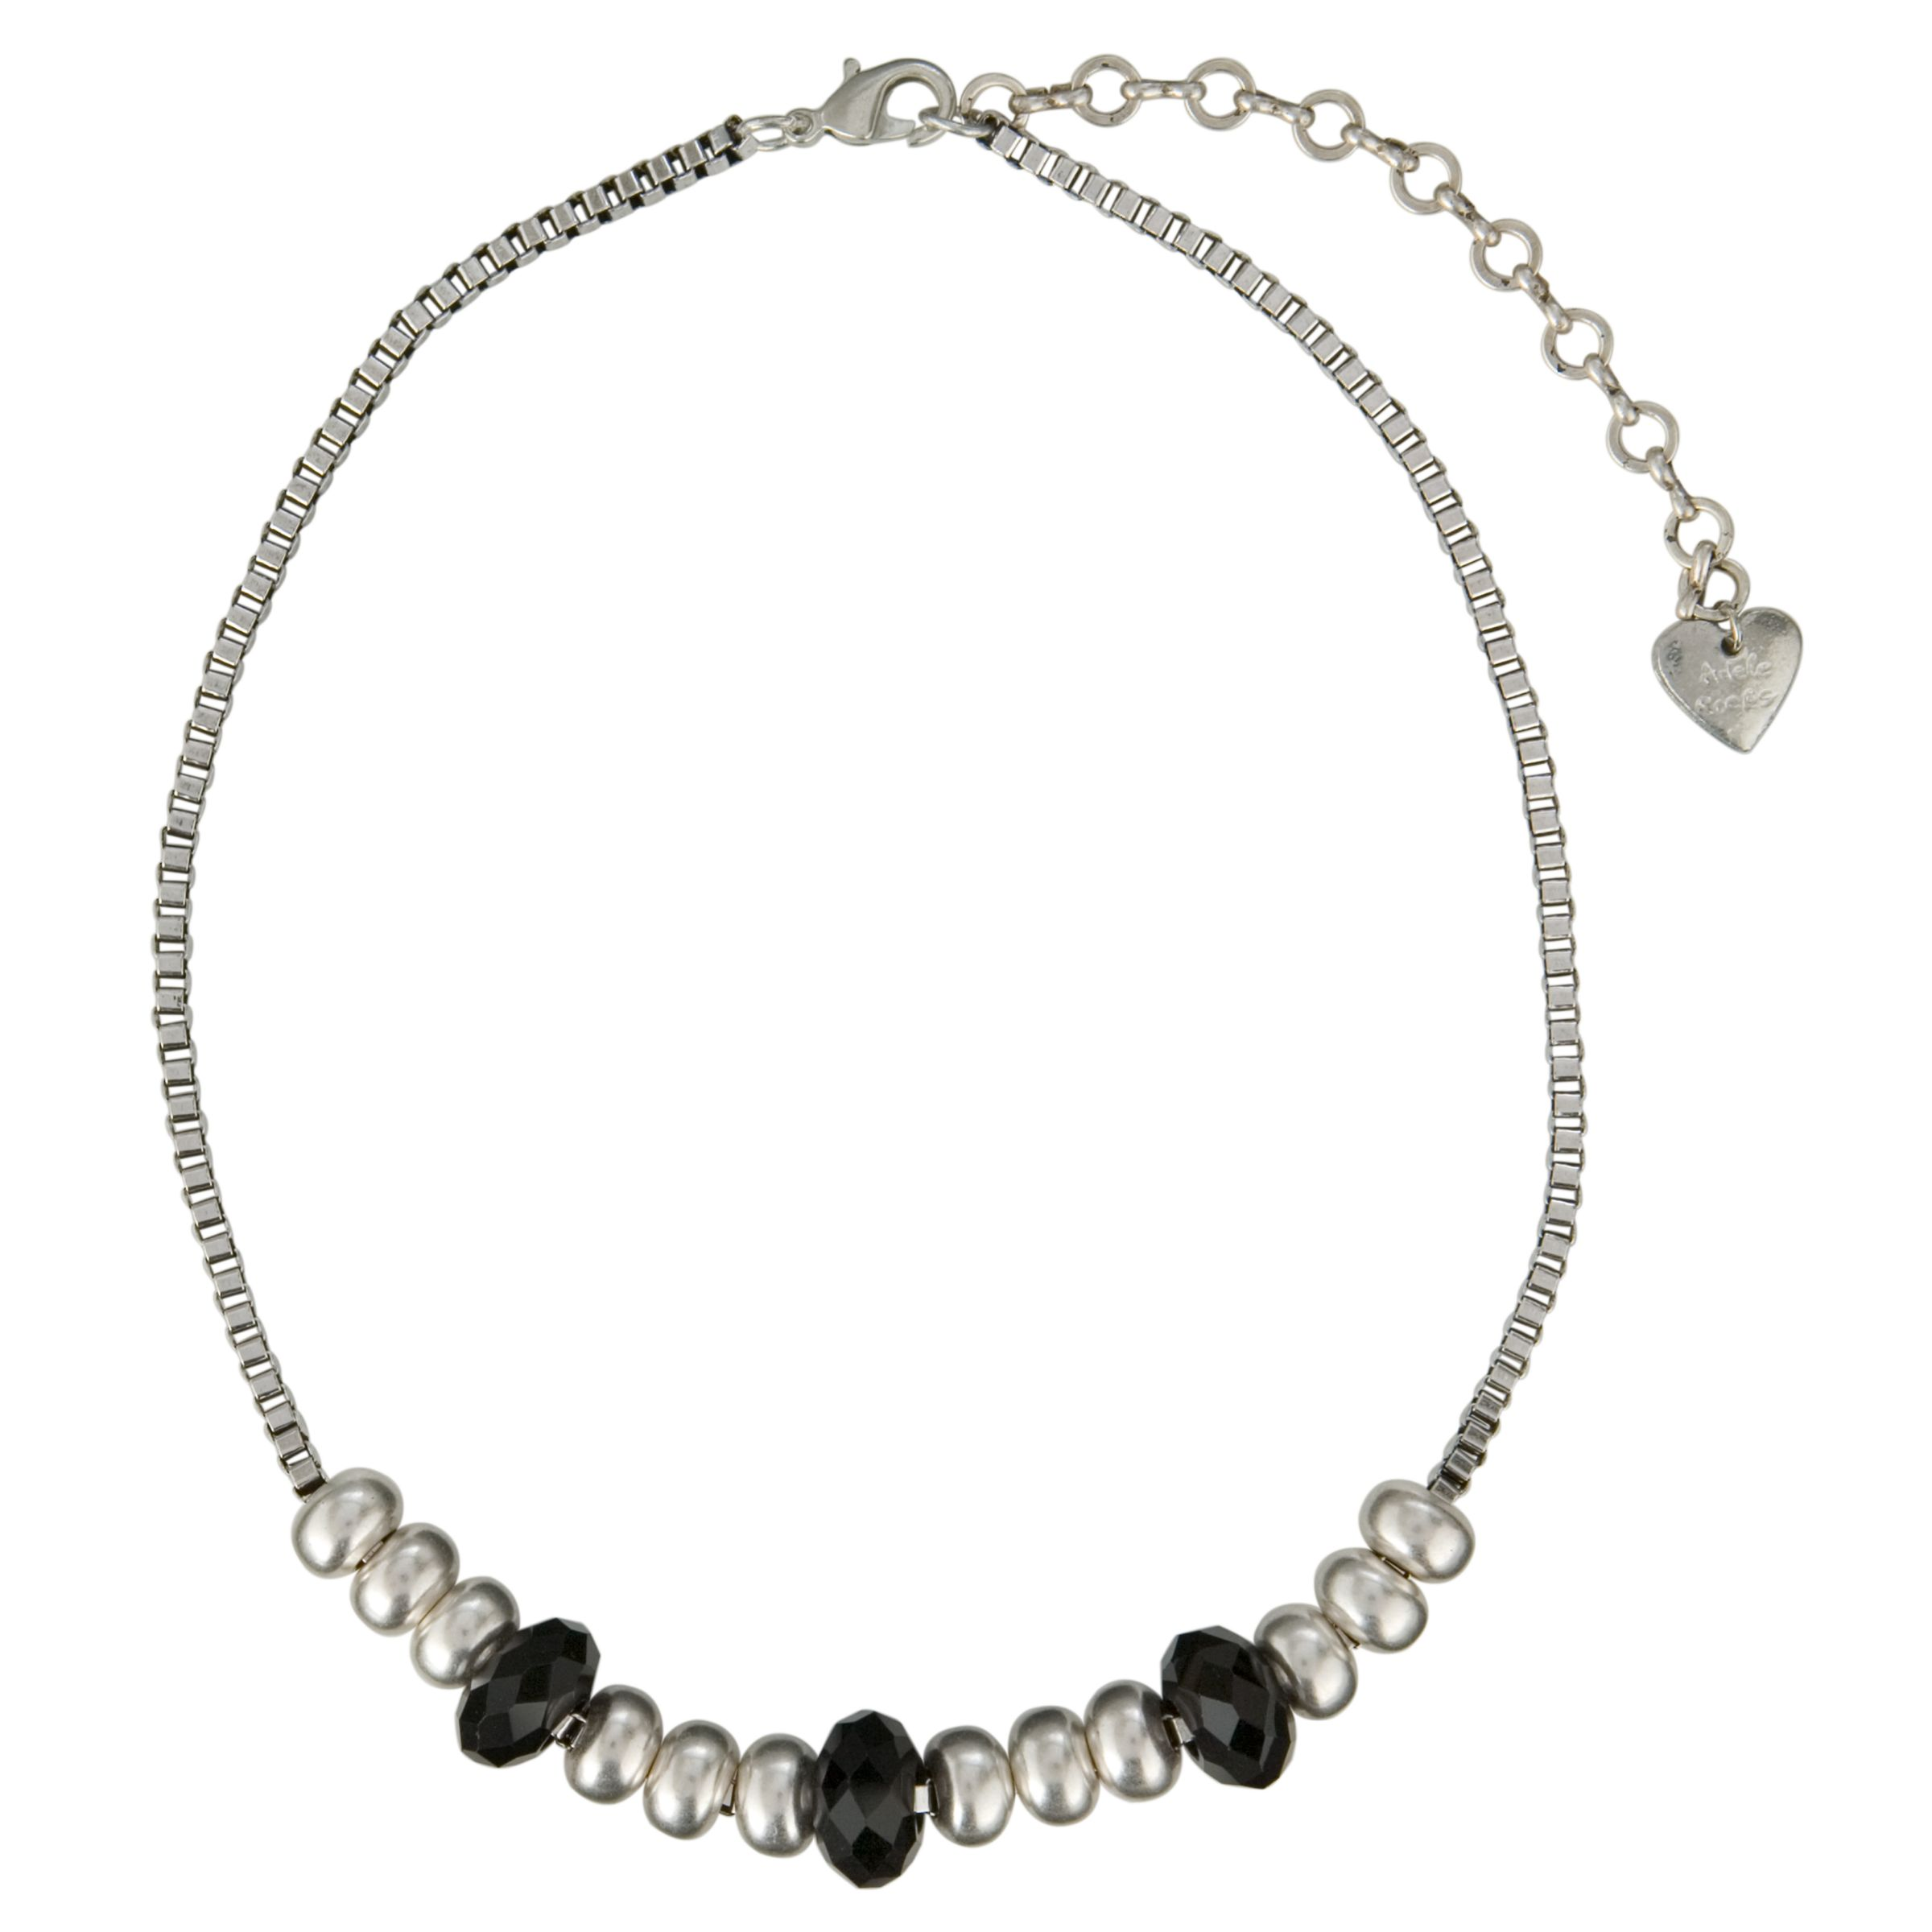 Adele Marie Black and Silver Bead Necklace